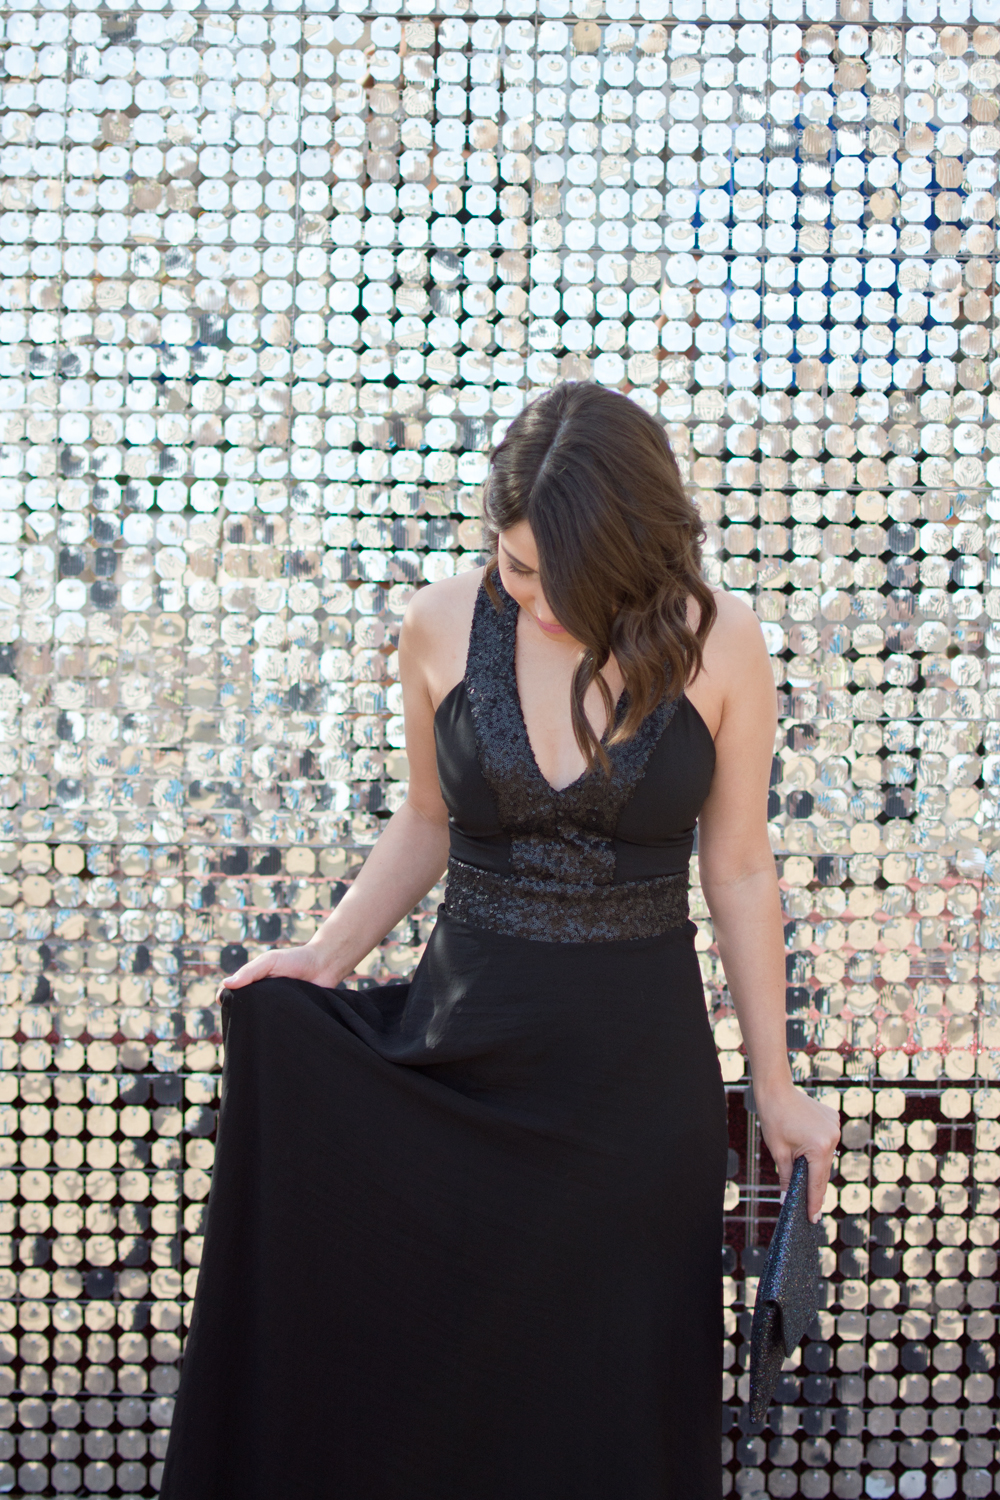 Beats and Bubby New years eve black tie event outfit, Black tie gown, Black tie outfit idea, Glittery NYE Outfit, New years eve outfit idea, Sequin New Years look, Black Tie New Years Eve Outfit